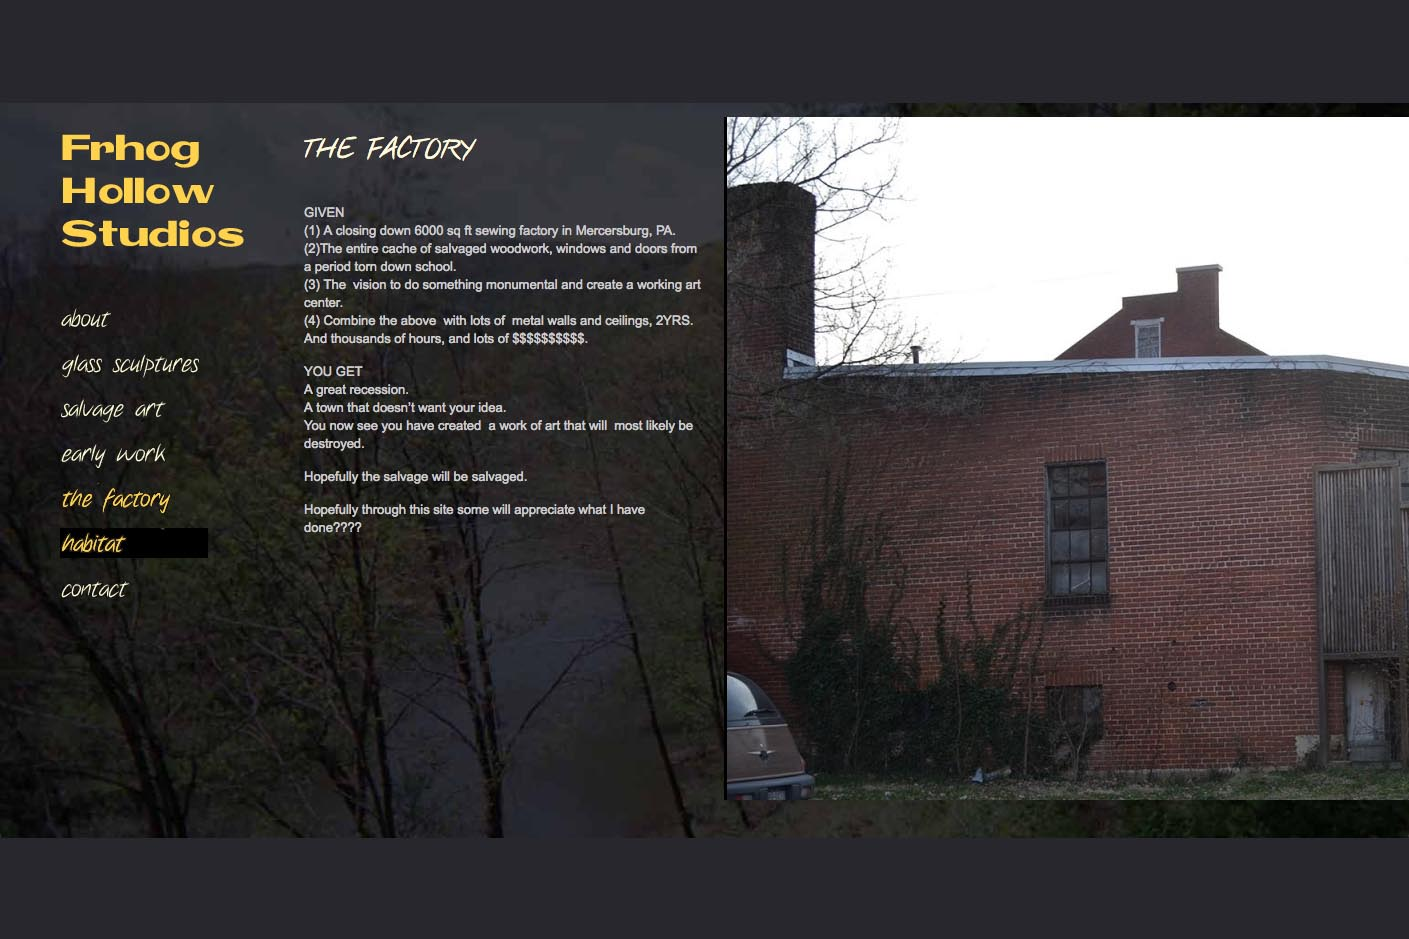 web design for a glass sculpture artist - the factory page